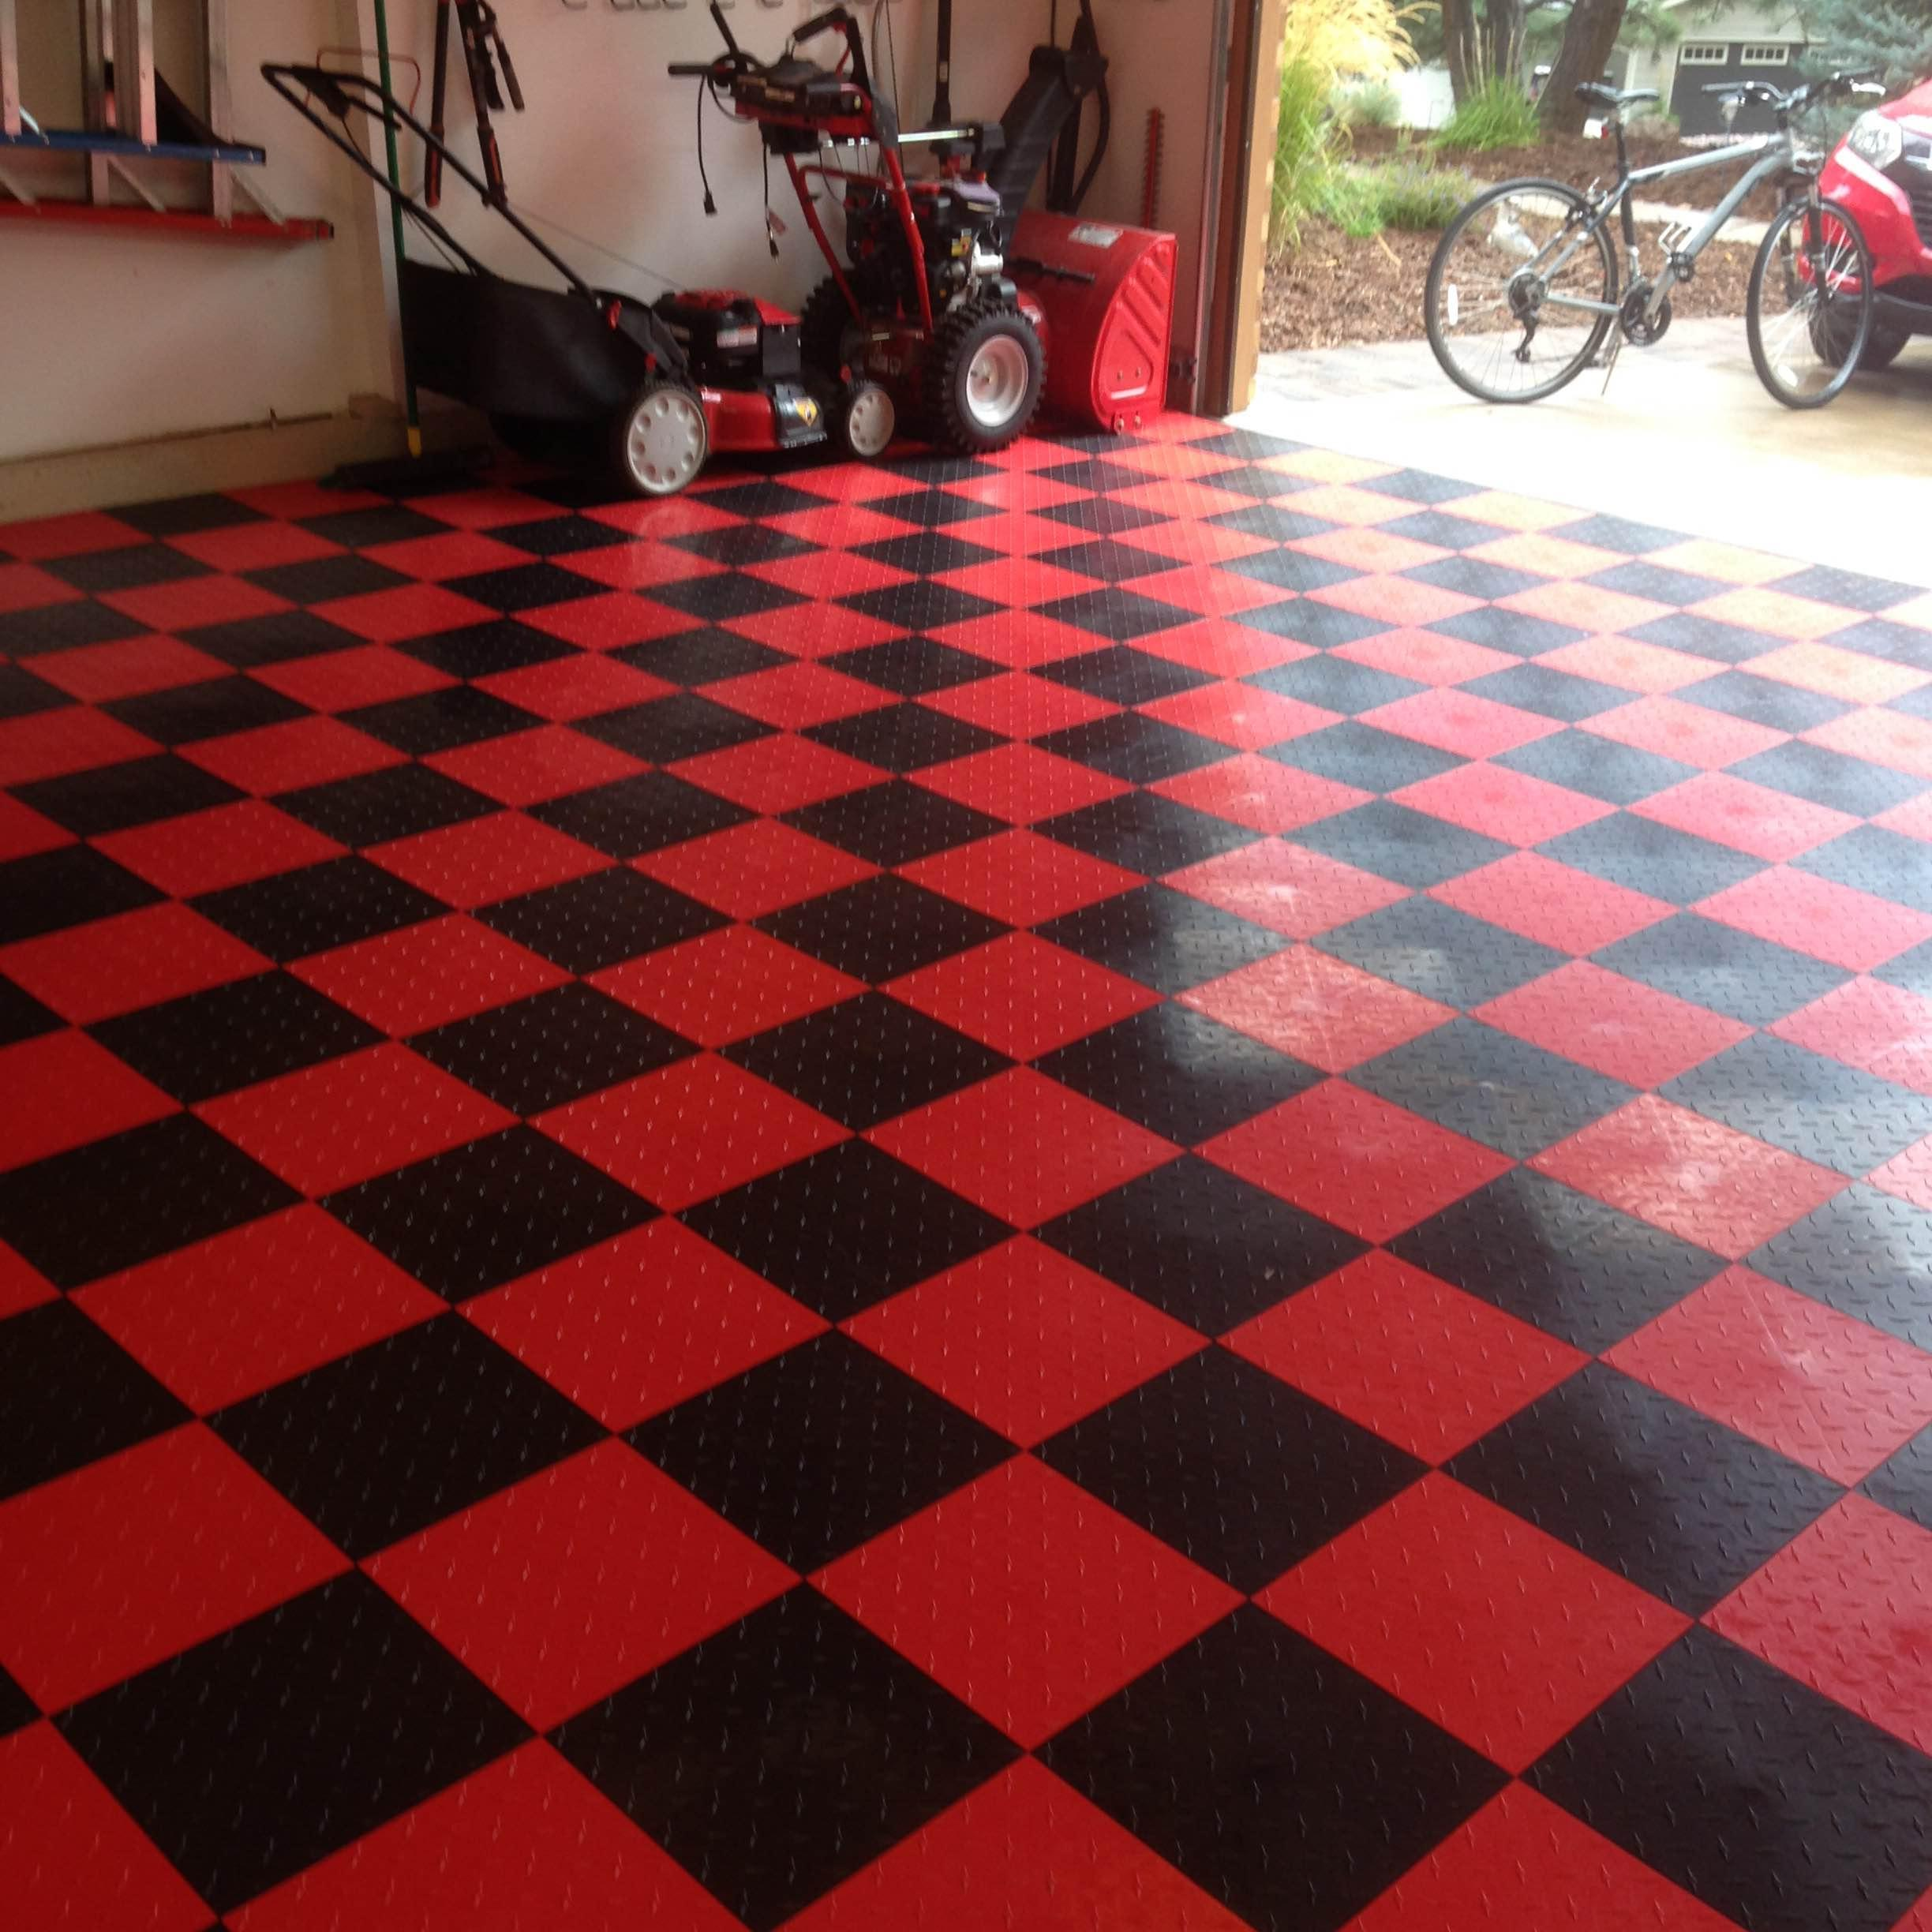 Amazon speedway garage tile interlocking garage flooring 6 view larger dailygadgetfo Choice Image